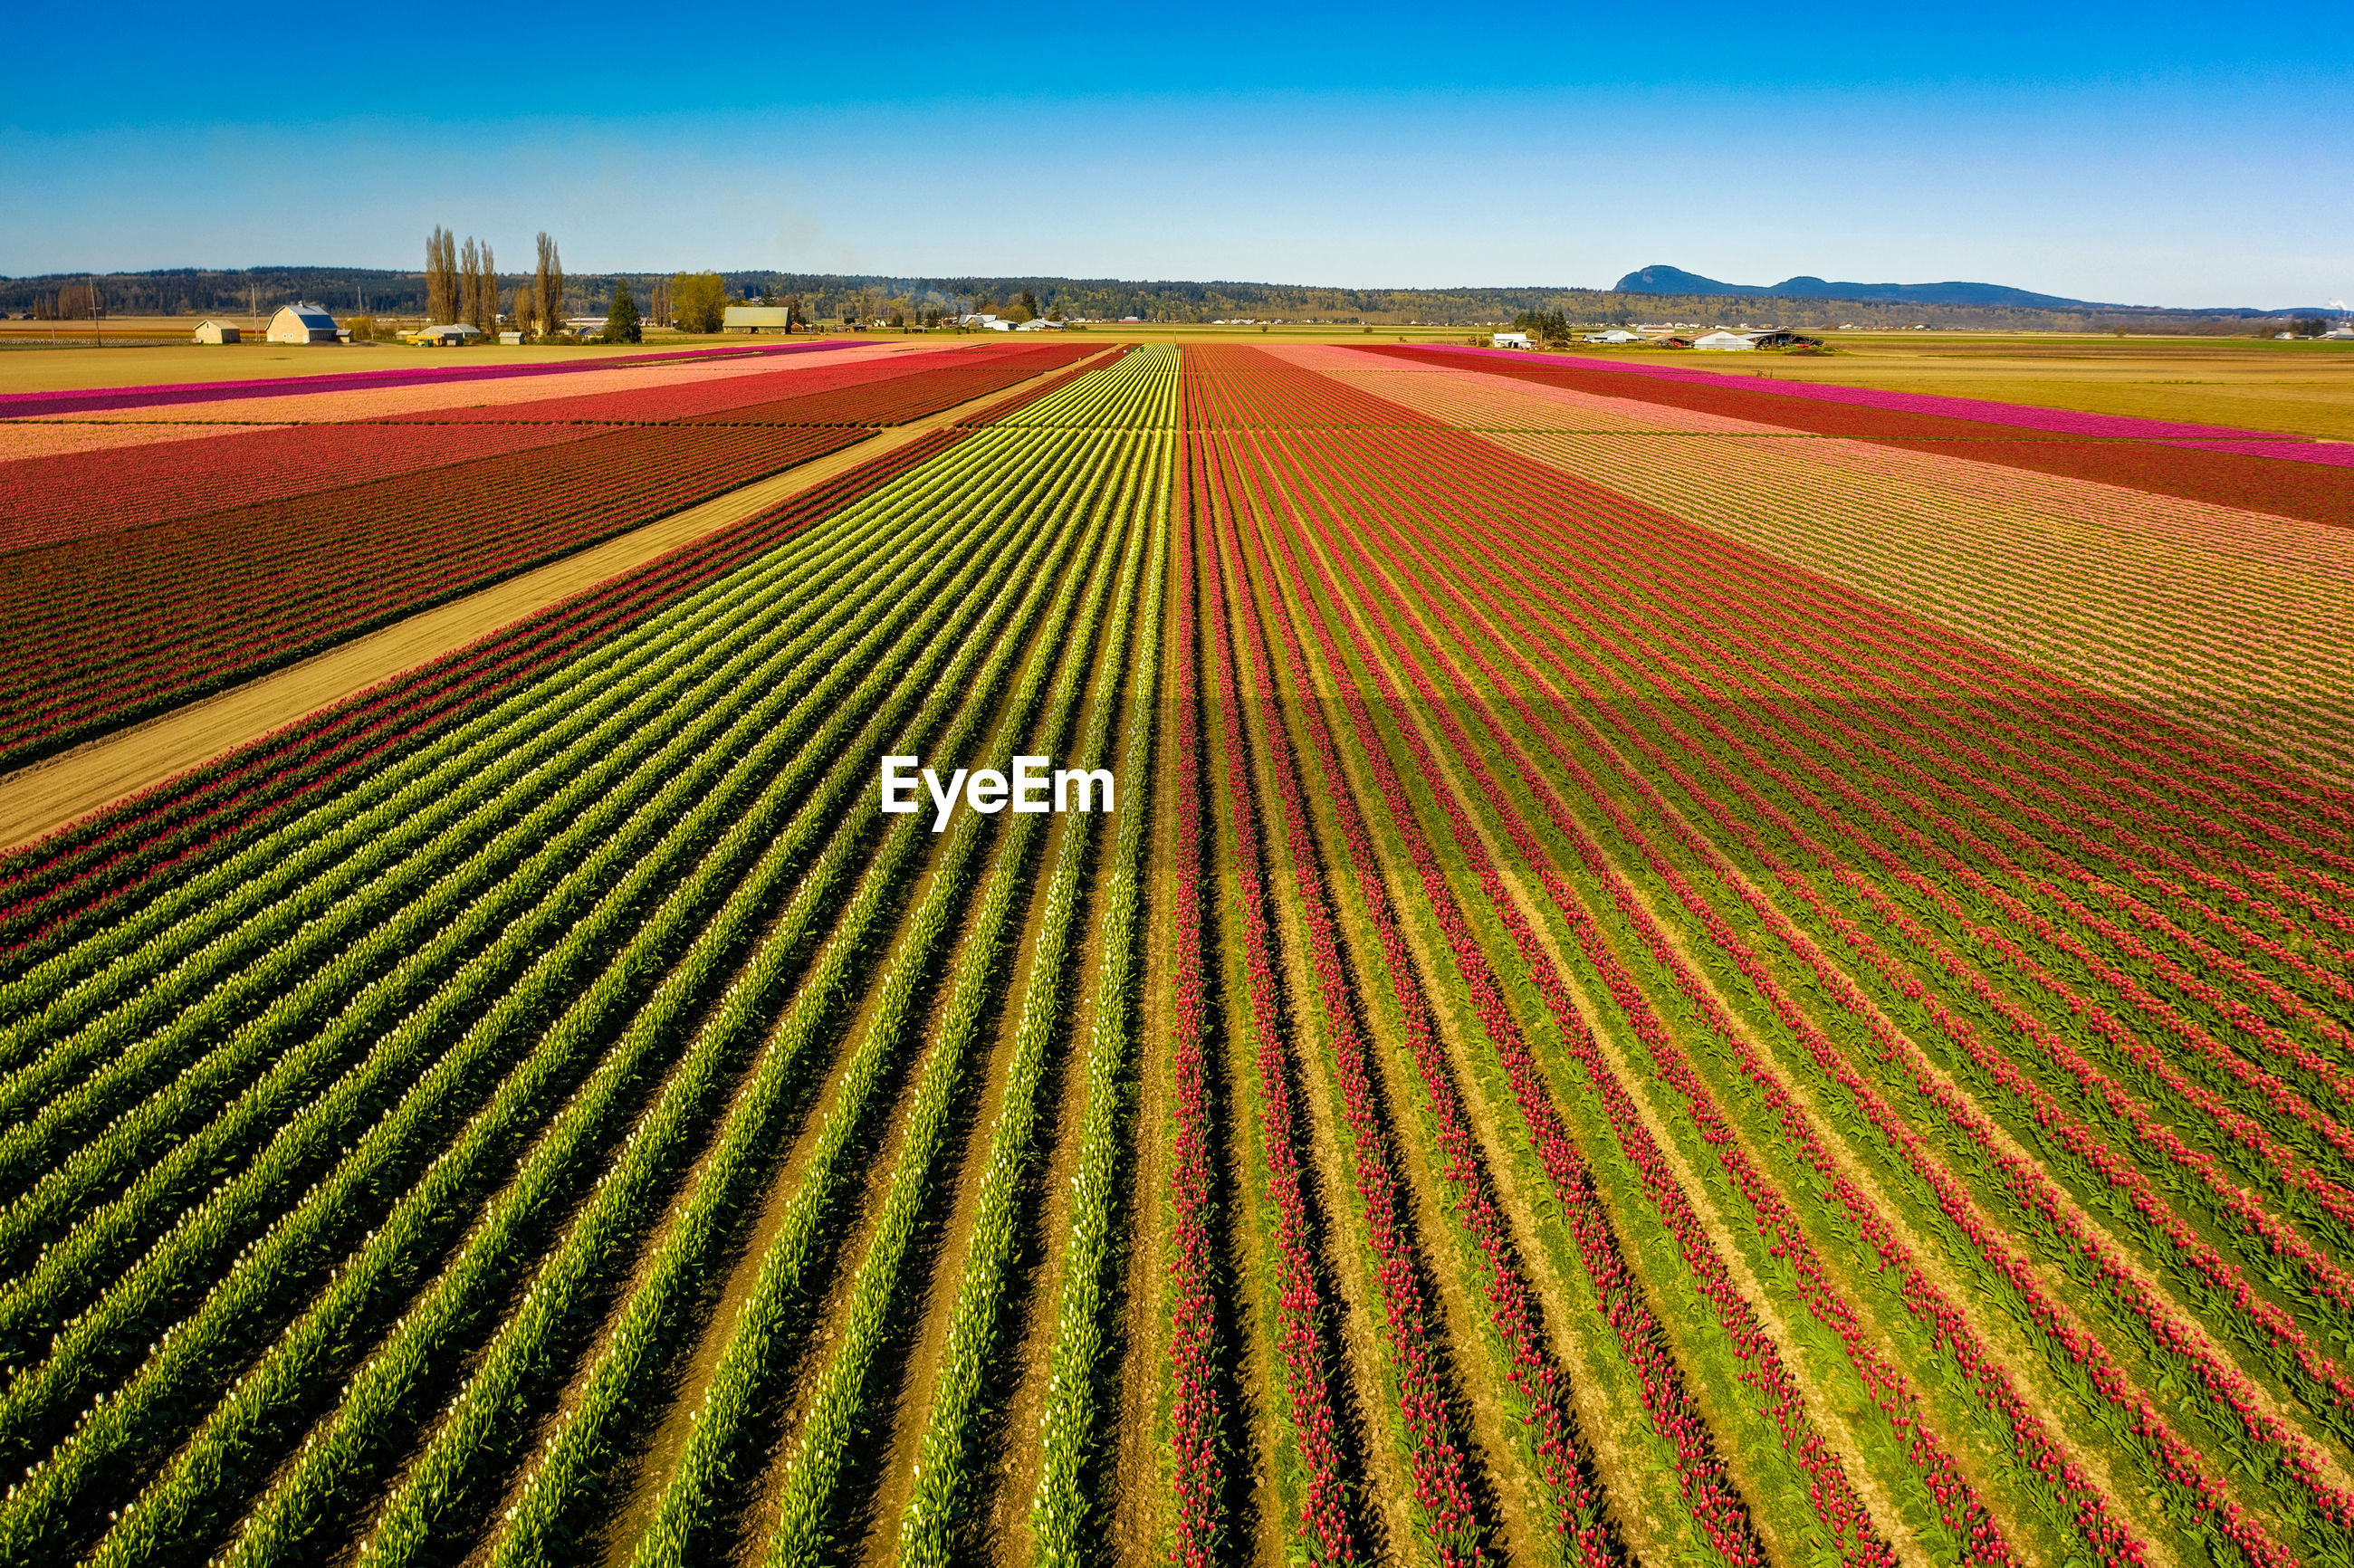 FULL FRAME SHOT OF MULTI COLORED AGRICULTURAL FIELD